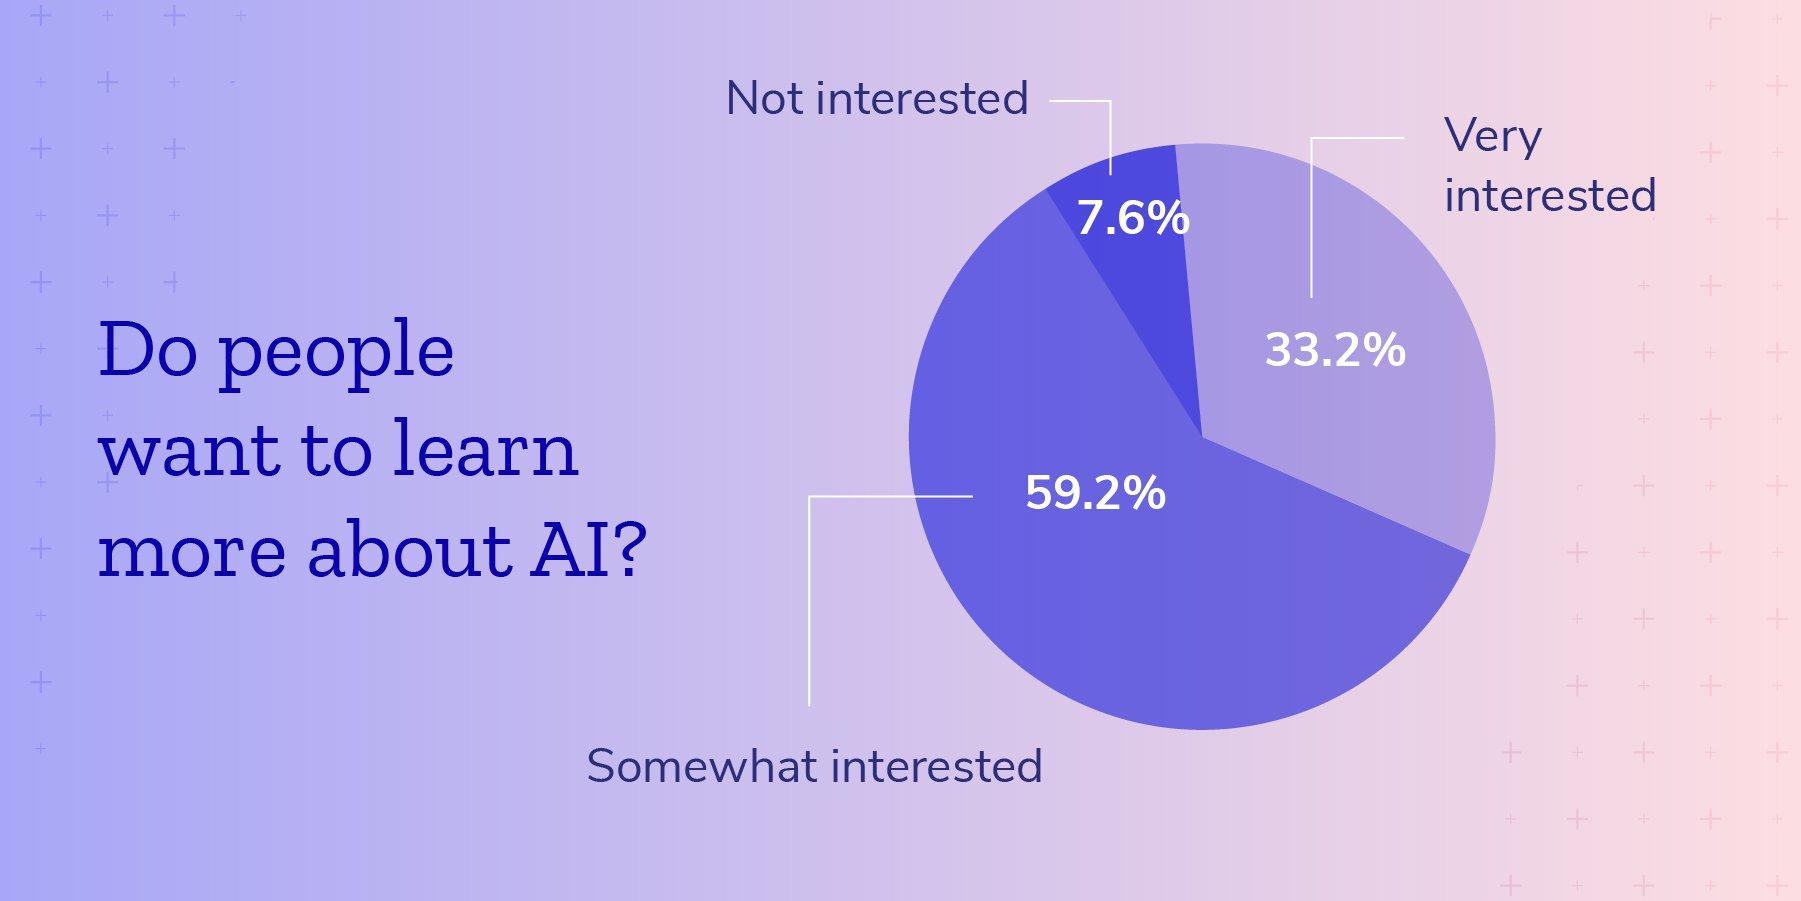 Do people want to learn more about AI?